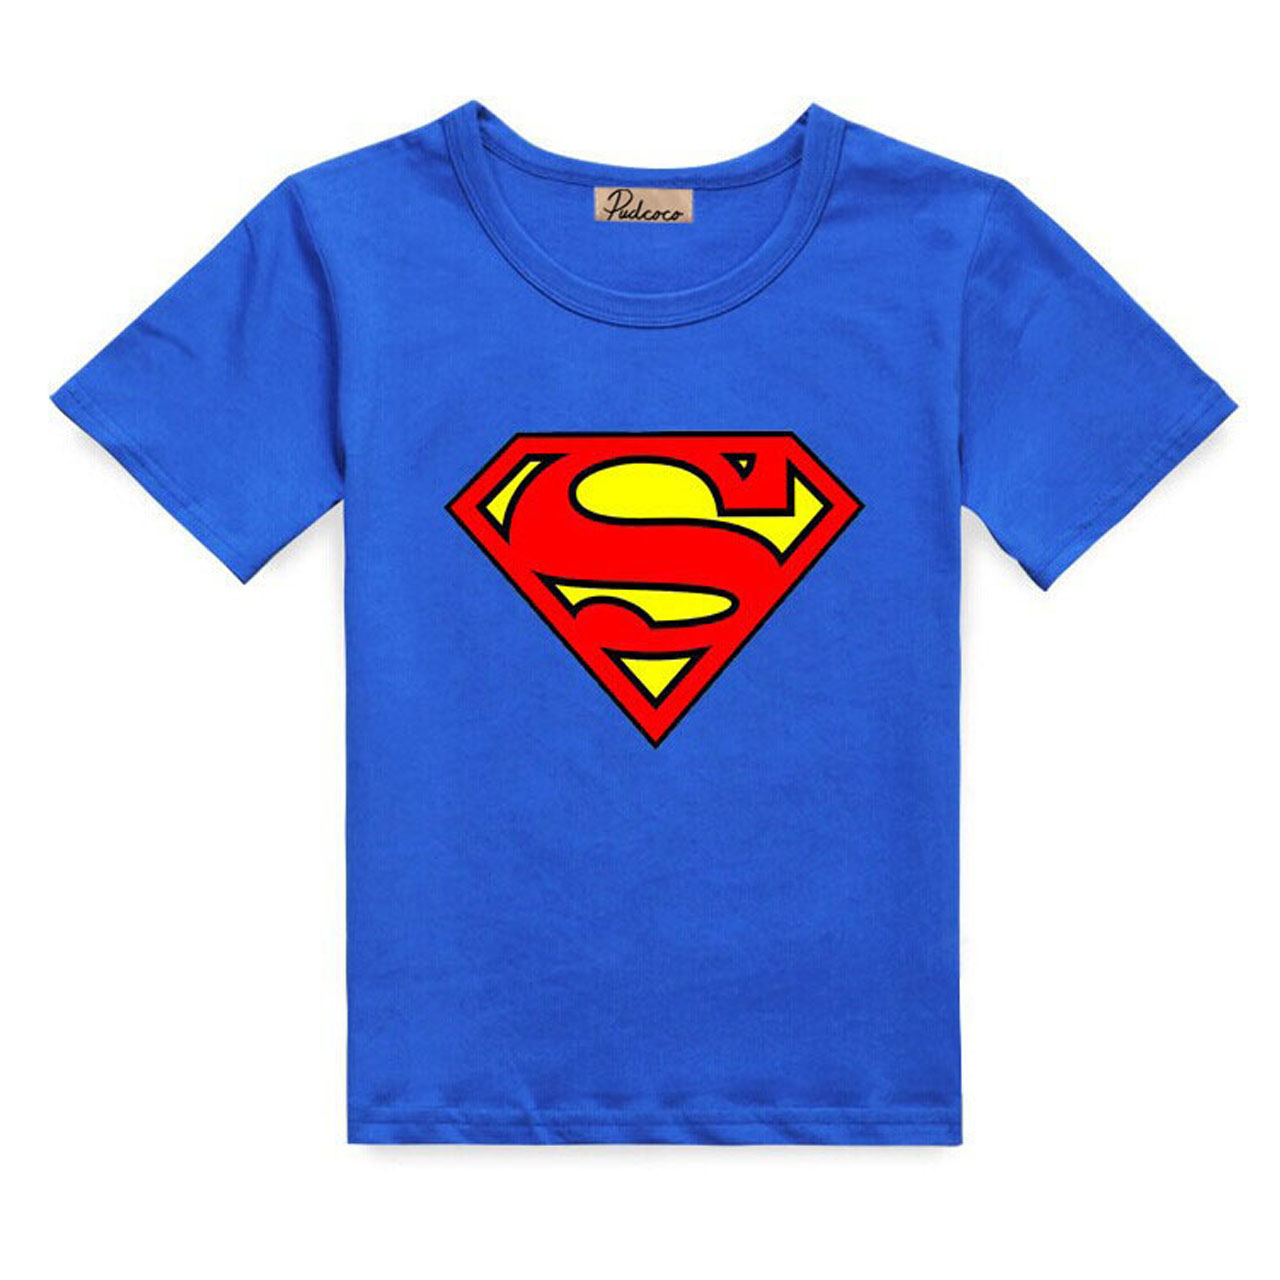 T-Shirts Boys Costume Tees Short-Sleeve Summer Tops Cotton Children Cute Lovely Superhero title=